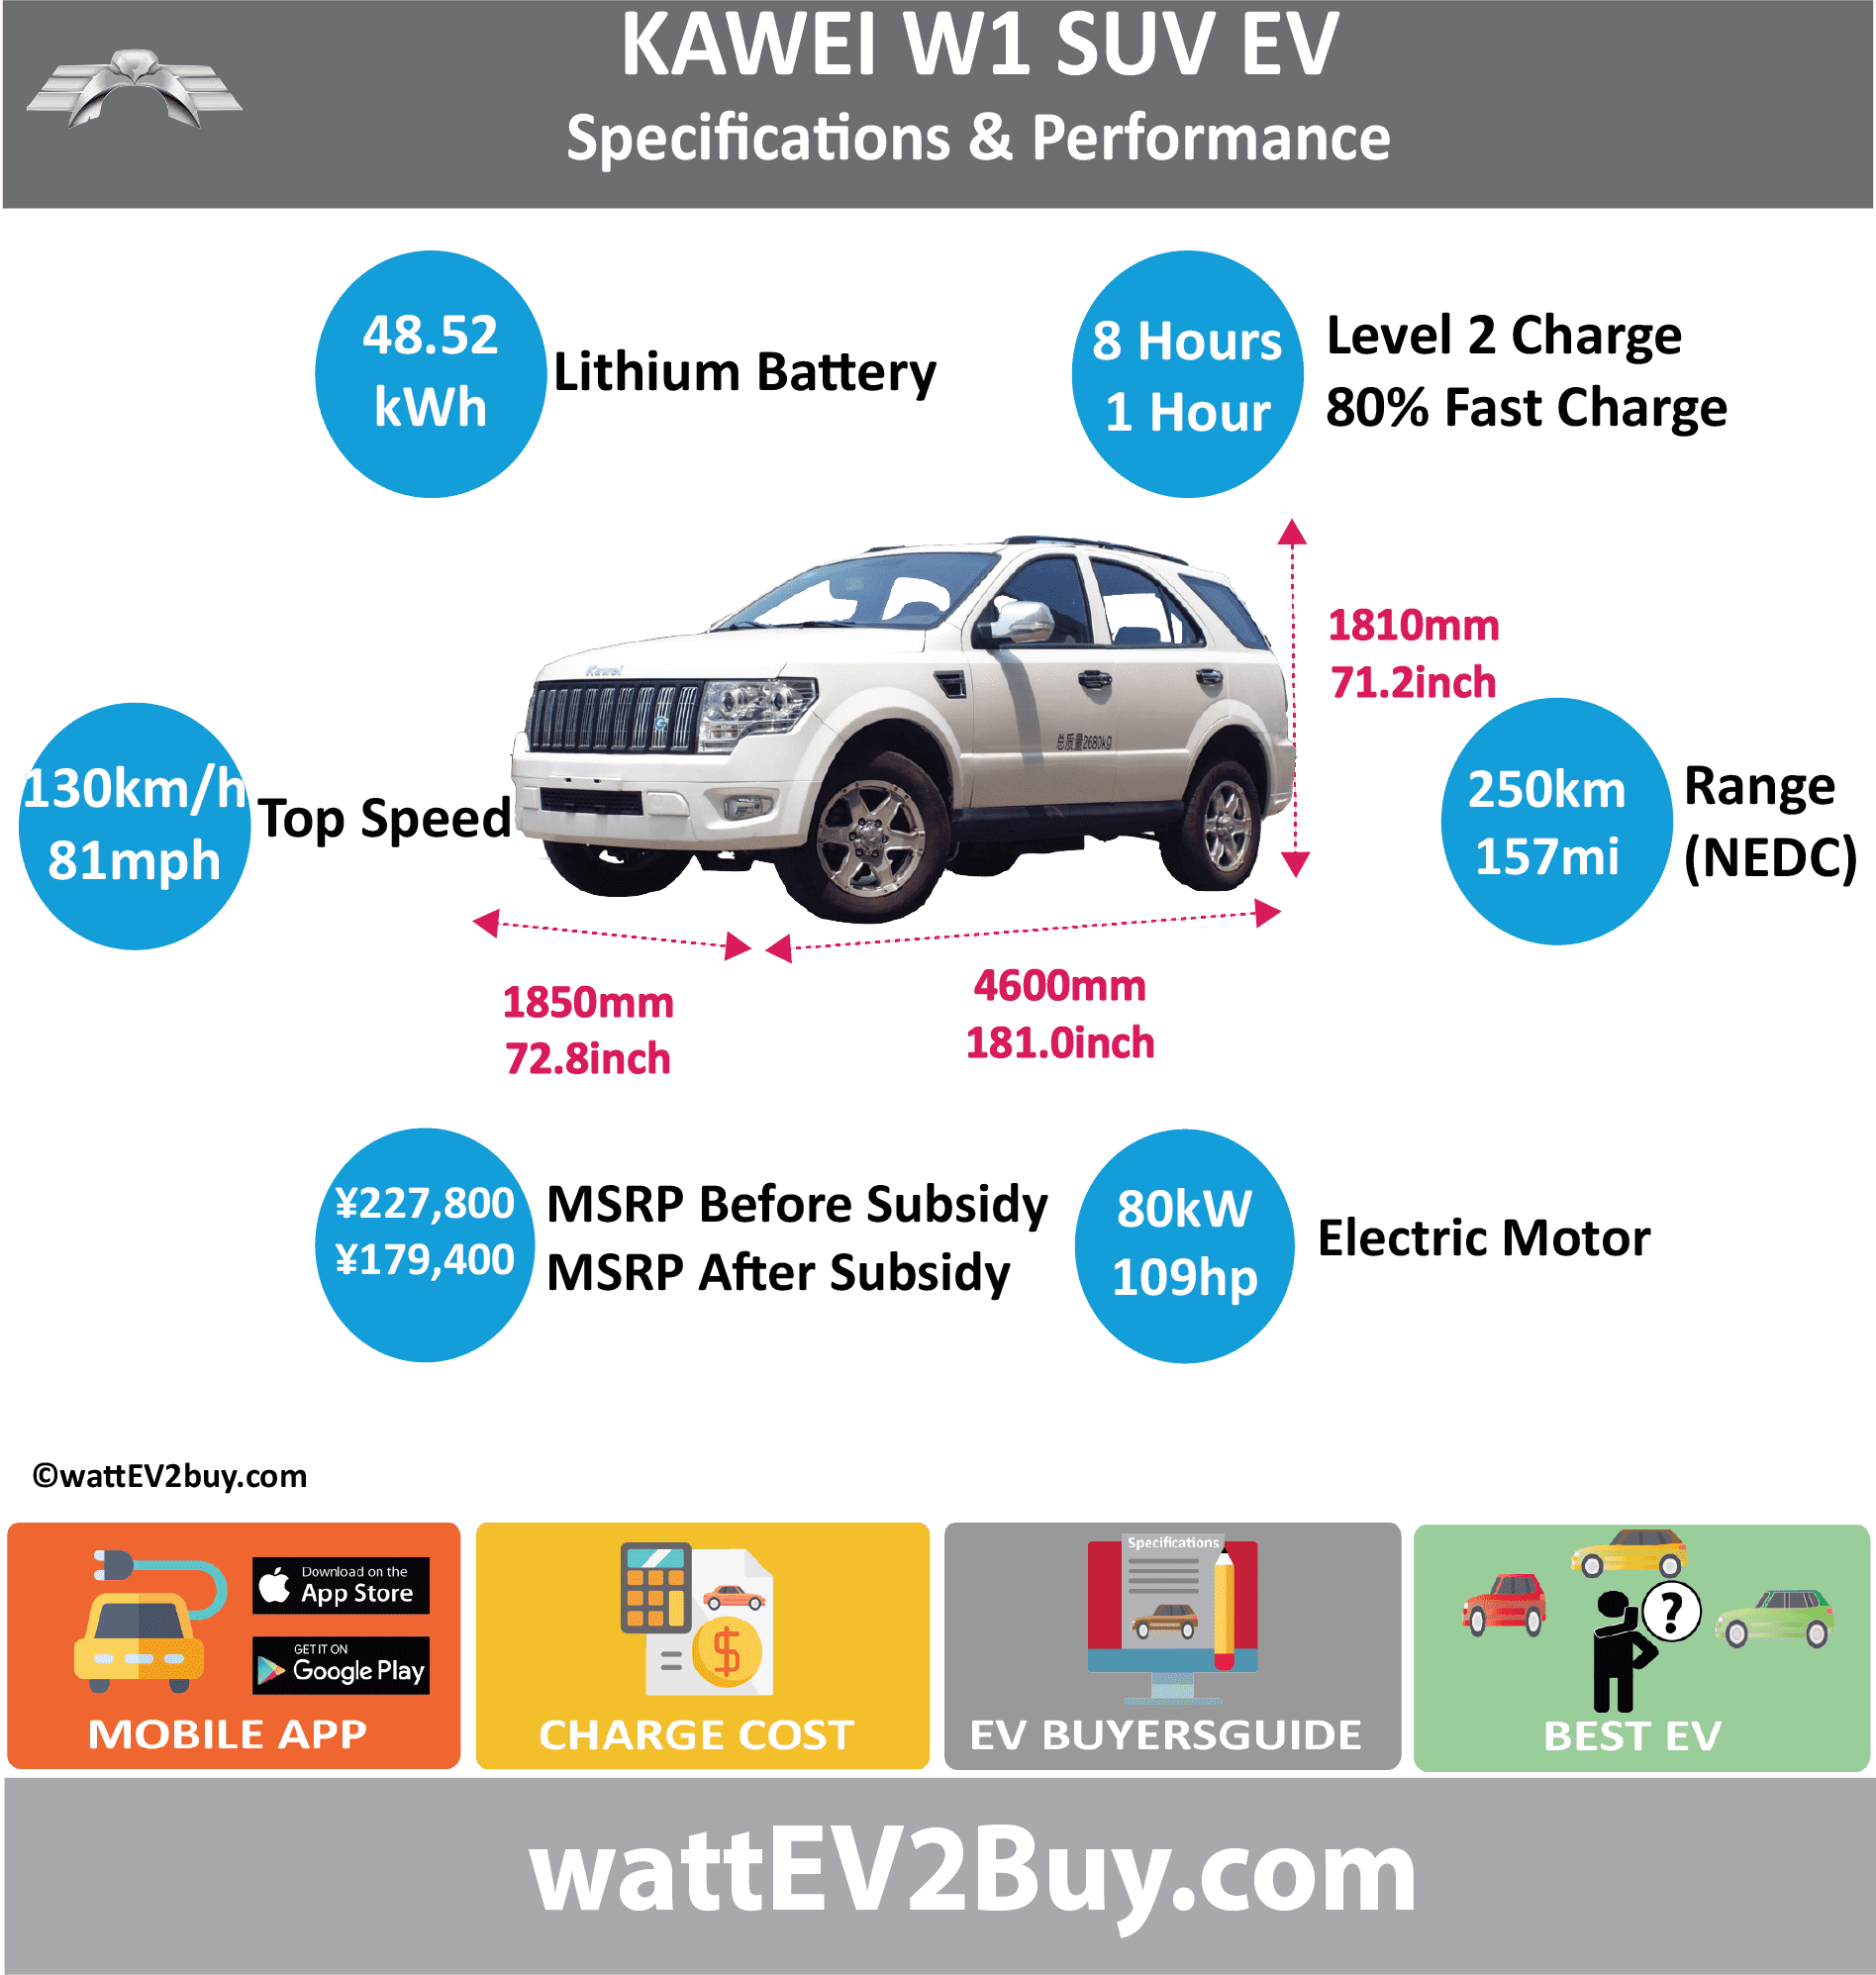 KAWEI W1 EV SUV SPECS	 wattev2Buy.com	2017 Battery Chemistry	Luxemote ternary Battery Capacity kWh	48.52 Battery Nominal rating kWh	 Voltage V	 Amps Ah	2.6 Cells	 Modules	 Efficiency	 Weight (kg)	 Cell Type	 SOC	 Cooling	 Cycles	 Battery Type	 Depth of Discharge (DOD)	 Energy Density Wh/kg	 Battery Manufacturer	 Battery Warranty - years	 Battery Warranty - km	 Battery Warranty - miles	 Battery Electric Range - at constant 38mph	 Battery Electric Range - at constant 60km/h	 Battery Electric Range - NEDC Mi	156.25 Battery Electric Range - NEDC km	250 Battery Electric Range - CCM Mi	 Battery Electric Range - CCM km	 Battery Electric Range - EPA Mi	 Battery Electric Range - EPA km	 Electric Top Speed - mph	81.25 Electric Top Speed - km/h	130 Acceleration 0 - 100km/h sec	 Acceleration 0 - 50km/h sec	 Acceleration 0 - 62mph sec	 Acceleration 0 - 60mph sec	 Acceleration 0 - 37.2mph sec	 Wireless Charging	 Direct Current Fast Charge kW	 Charger Efficiency	 Onboard Charger kW	 Onboard Charger Optional kW	 Charging Cord - amps	 Charging Cord - volts	 LV 1 Charge kW	 LV 1 Charge Time (Hours)	 LV 2 Charge kW	 LV 2 Charge Time (Hours)	8 LV 3 CCS/Combo kW	 LV 3 Charge Time (min to 70%)	 LV 3 Charge Time (min to 80%)	1 LV 3 Charge Time (mi)	 LV 3 Charge Time (km)	 Supercharger	 Charging System kW	 Charger Output	 Charge Connector	 Power Outlet kW	 Power Outlet Amps	 MPGe Combined - miles	 MPGe Combined - km	 MPGe City - miles	 MPGe City - km	 MPGe Highway - miles	 MPGe Highway - km	 Max Power - hp (Electric Max)	109 Max Power - kW  (Electric Max)	80 Max Torque - lb.ft  (Electric Max)	 Max Torque - N.m  (Electric Max)	 Drivetrain	 Generator	 Motor Type	 Electric Motor Manufacturer	Shanghai Electric Drive Co., Ltd Electric Motor Output kW	45 Electric Motor Output hp	60.3459 Transmission	 Electric Motor - Rear	 Max Power - hp (Rear)	 Max Power - kW (Rear)	 Max Torque - lb.ft (Rear)	 Max Torque - N.m (Rear)	 Electric Motor - Front	 Max Power - hp (Front)	 Max Power - kW (Front)	 Max Torque - lb.ft (Front)	 Max Torque - N.m (Front)	 Energy Consumption kWh/100km	 Energy Consumption kWh/100miles	 Deposit	 GB Battery Lease per month	 EU Battery Lease per month	 MSRP (expected)	 EU MSRP (before incentives & destination)	 GB MSRP (before incentives & destination)	 US MSRP (before incentives & destination)	 CHINA MSRP (before incentives & destination)	 ¥227,800.00  MSRP after incentives	 ¥179,400.00  Vehicle	 Trims	 Doors	5 Seating	5 Dimensions	 Luggage (L)	 GVWR (kg)	 GVWR (lbs)	 Curb Weight (kg)	1850 Curb Weight (lbs)	 Payload Capacity (kg)	 Payload Capacity (lbs)	 Towing Capacity (lbs)	 Max Load Height (m)	 Ground Clearance (inc)	 Ground Clearance (mm)	 Lenght (mm)	4600 Width (mm)	1850 Height (mm)	1810 Wheelbase (mm)	2730 Lenght (inc)	181.0 Width (inc)	72.8 Height (inc)	71.2 Wheelbase (inc)	107.4 Other	 Utility Factor	 Auto Show Unveil	 Availability	 Market	 Segment	 Class	 Safety Level	 Unveiled	 Relaunch	 First Delivery	 Chassis designed	 Based On	 AKA	 Self-Driving System	 SAE Autonomous Level	 Connectivity	 LCD Screen (inch)	10.4 Unique	 Extras	 Incentives	 Home Charge Installation	 Public Charging	 Subsidy	 Chinese Name	卡威W1 EV Model Code	JNQ6460BEV WEBSITE